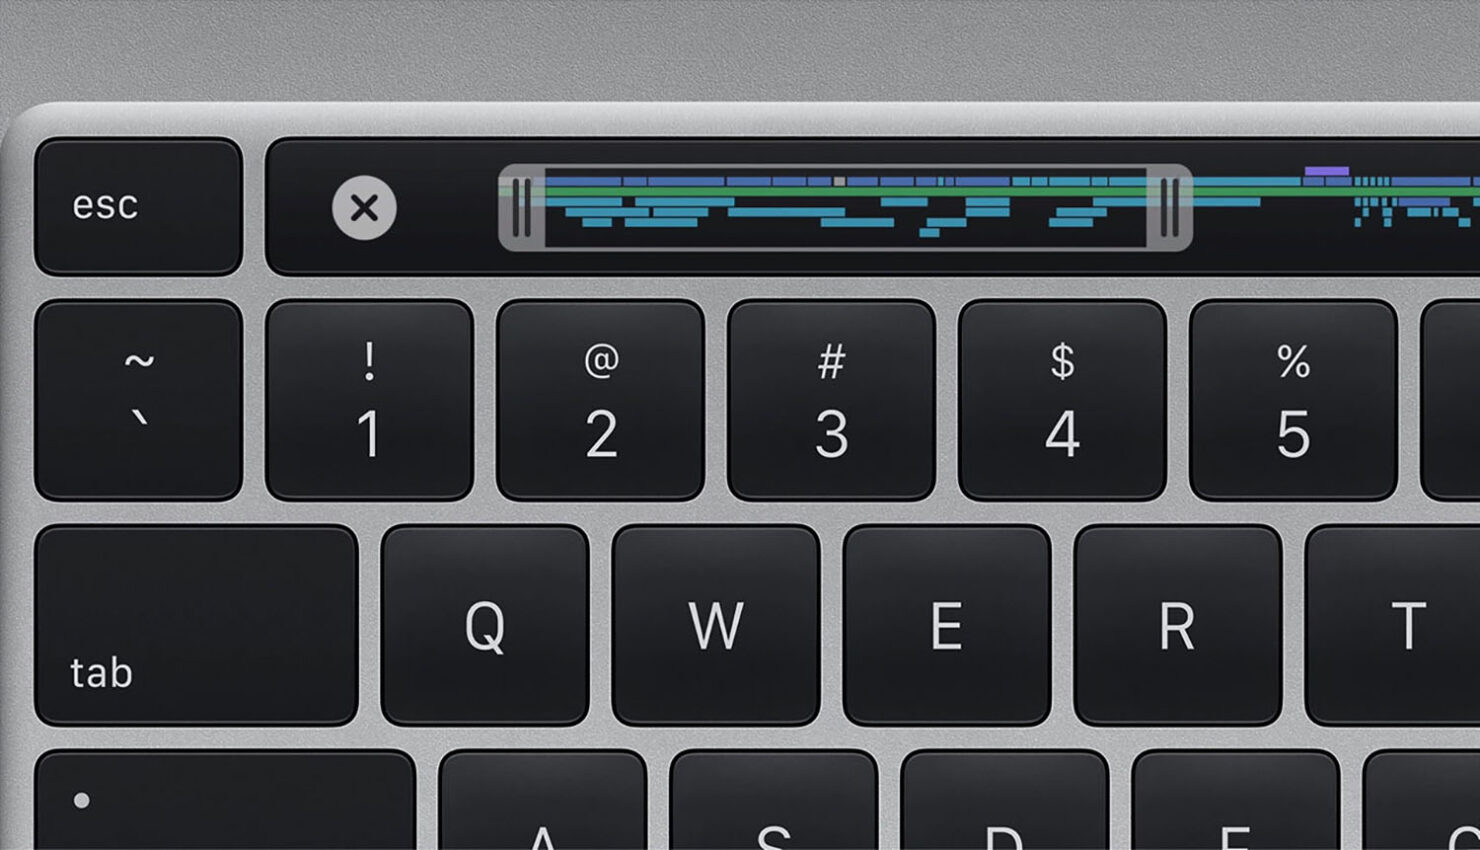 New MacBook Pro Bought Directly From Apple Store Outlet Has Two 'Control' Keys Next to Each Other in Hilarious Design Mishap